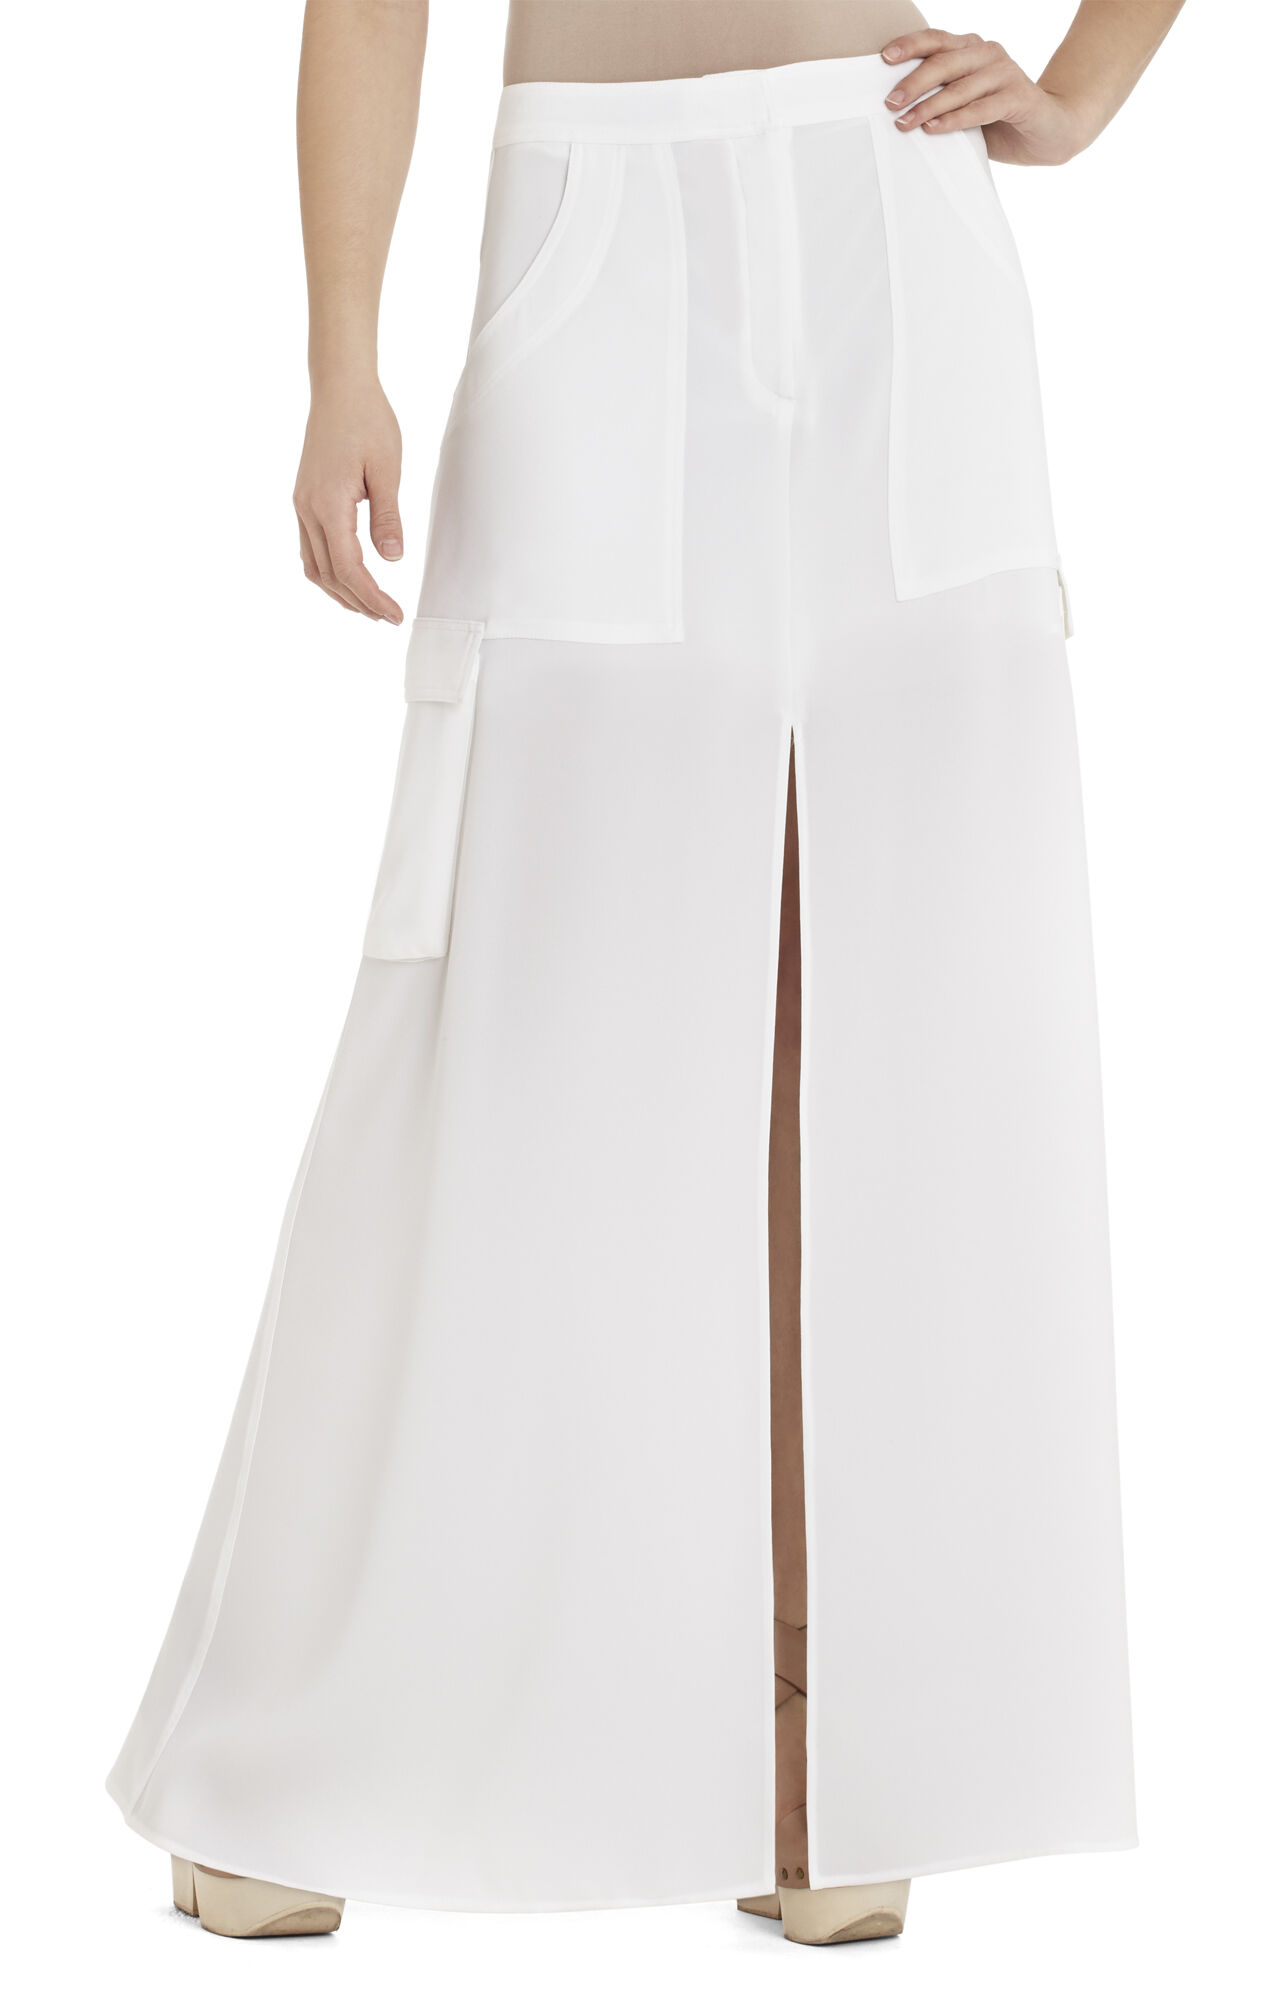 Runway Arden Pocket Skirt